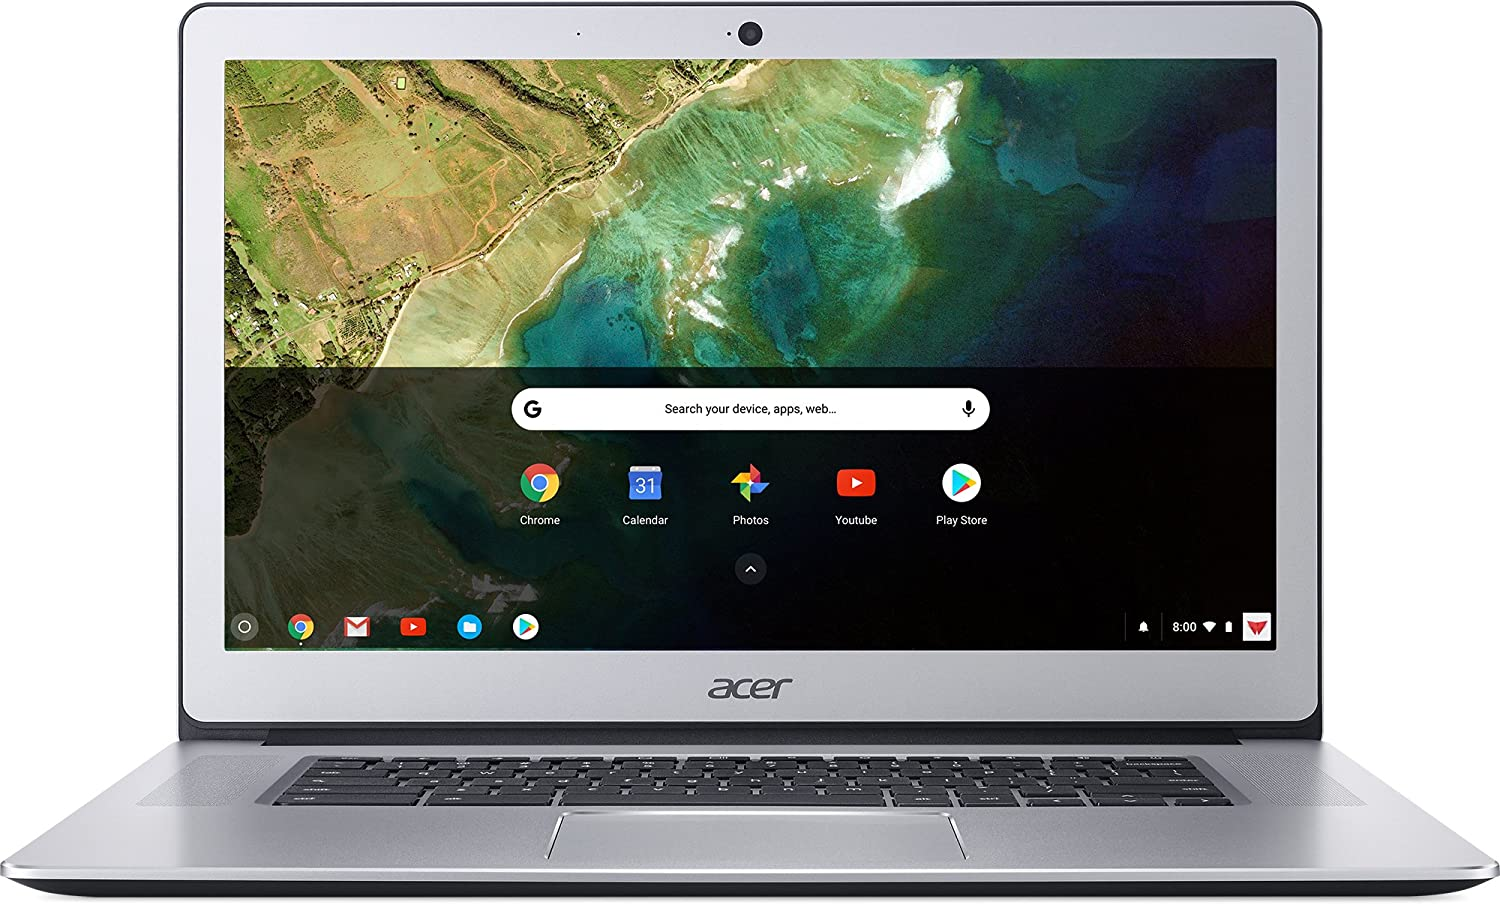 8 Best Acer Laptops in 2021 [For Gamers, Students, Professionals]